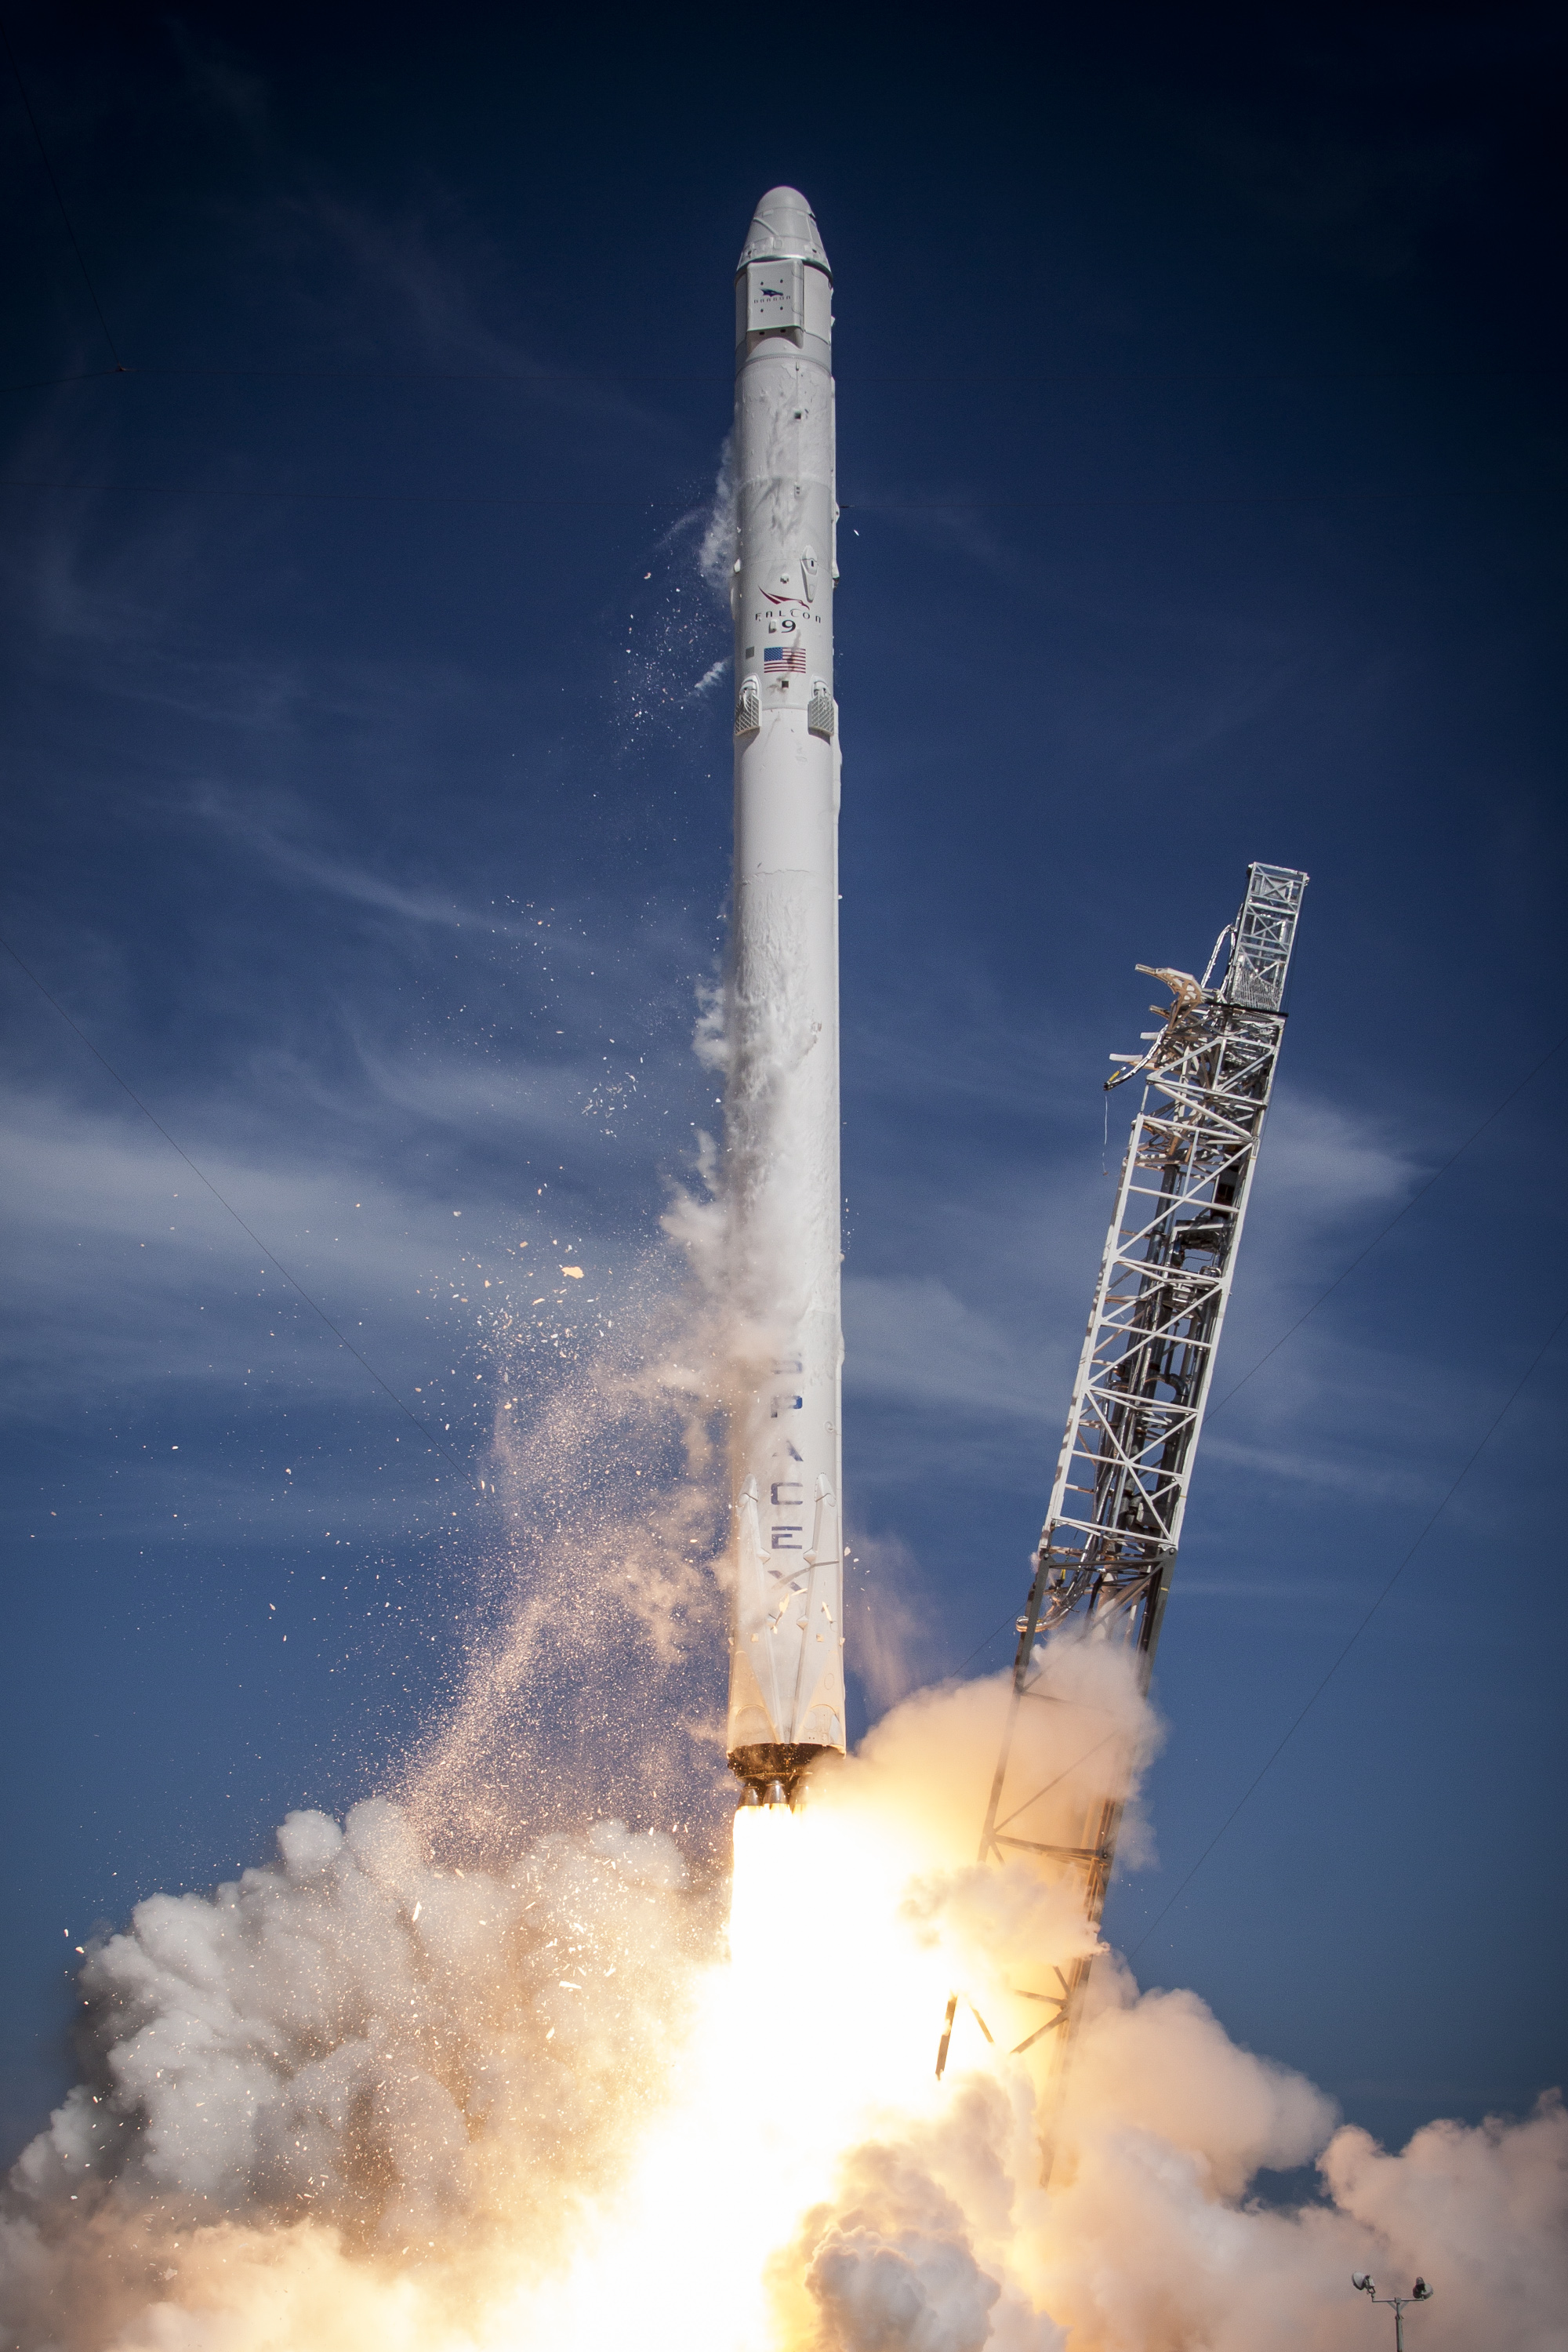 Iphone X Wallpaper Download Hd Free Stock Photo From Spacex 183 Pexels